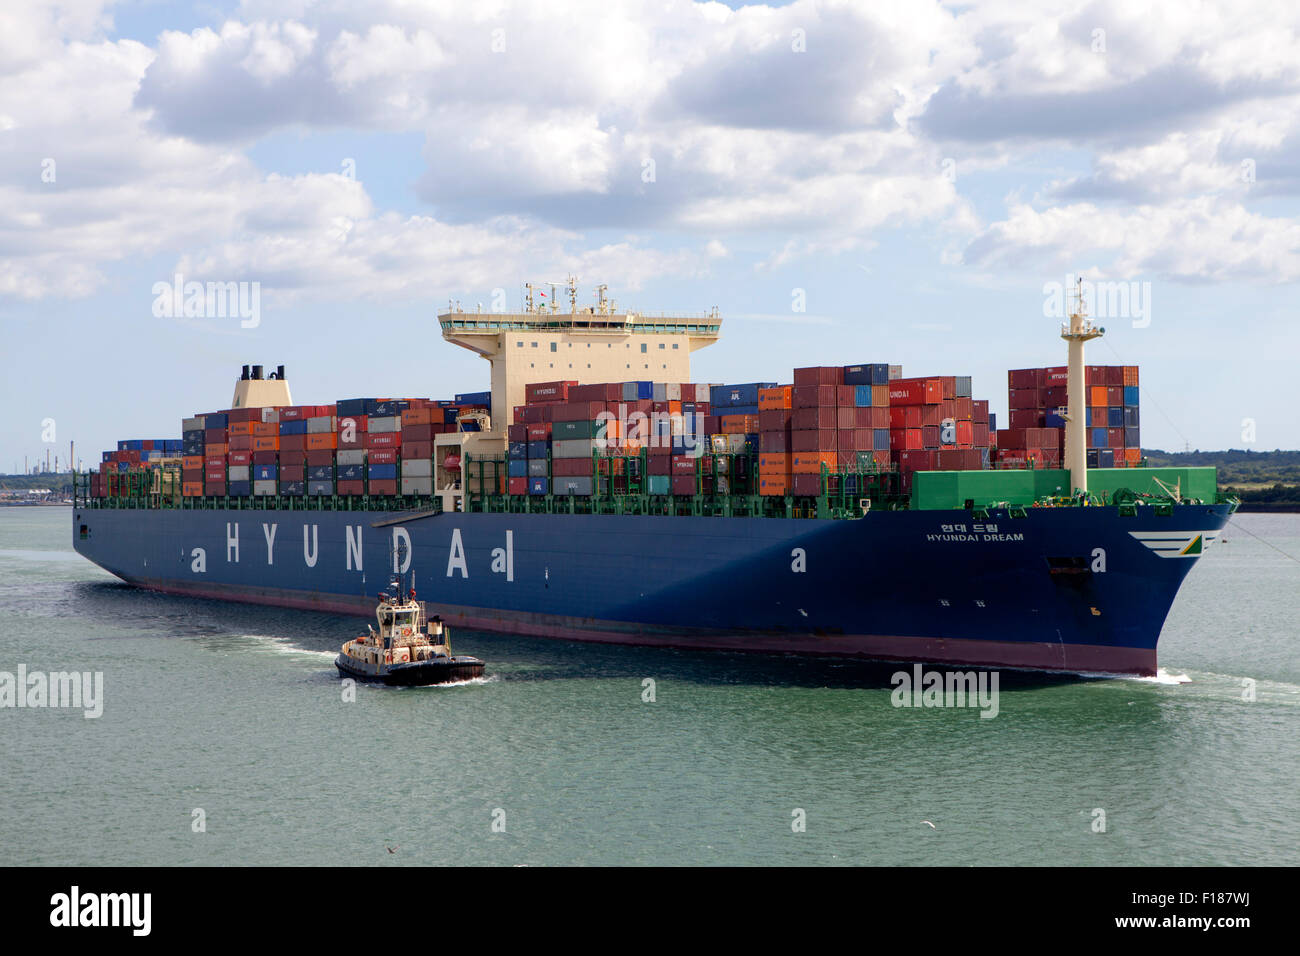 hyundai-dream-container-ship-carrying-freight-imo-9637222-entering-F187WJ.jpg